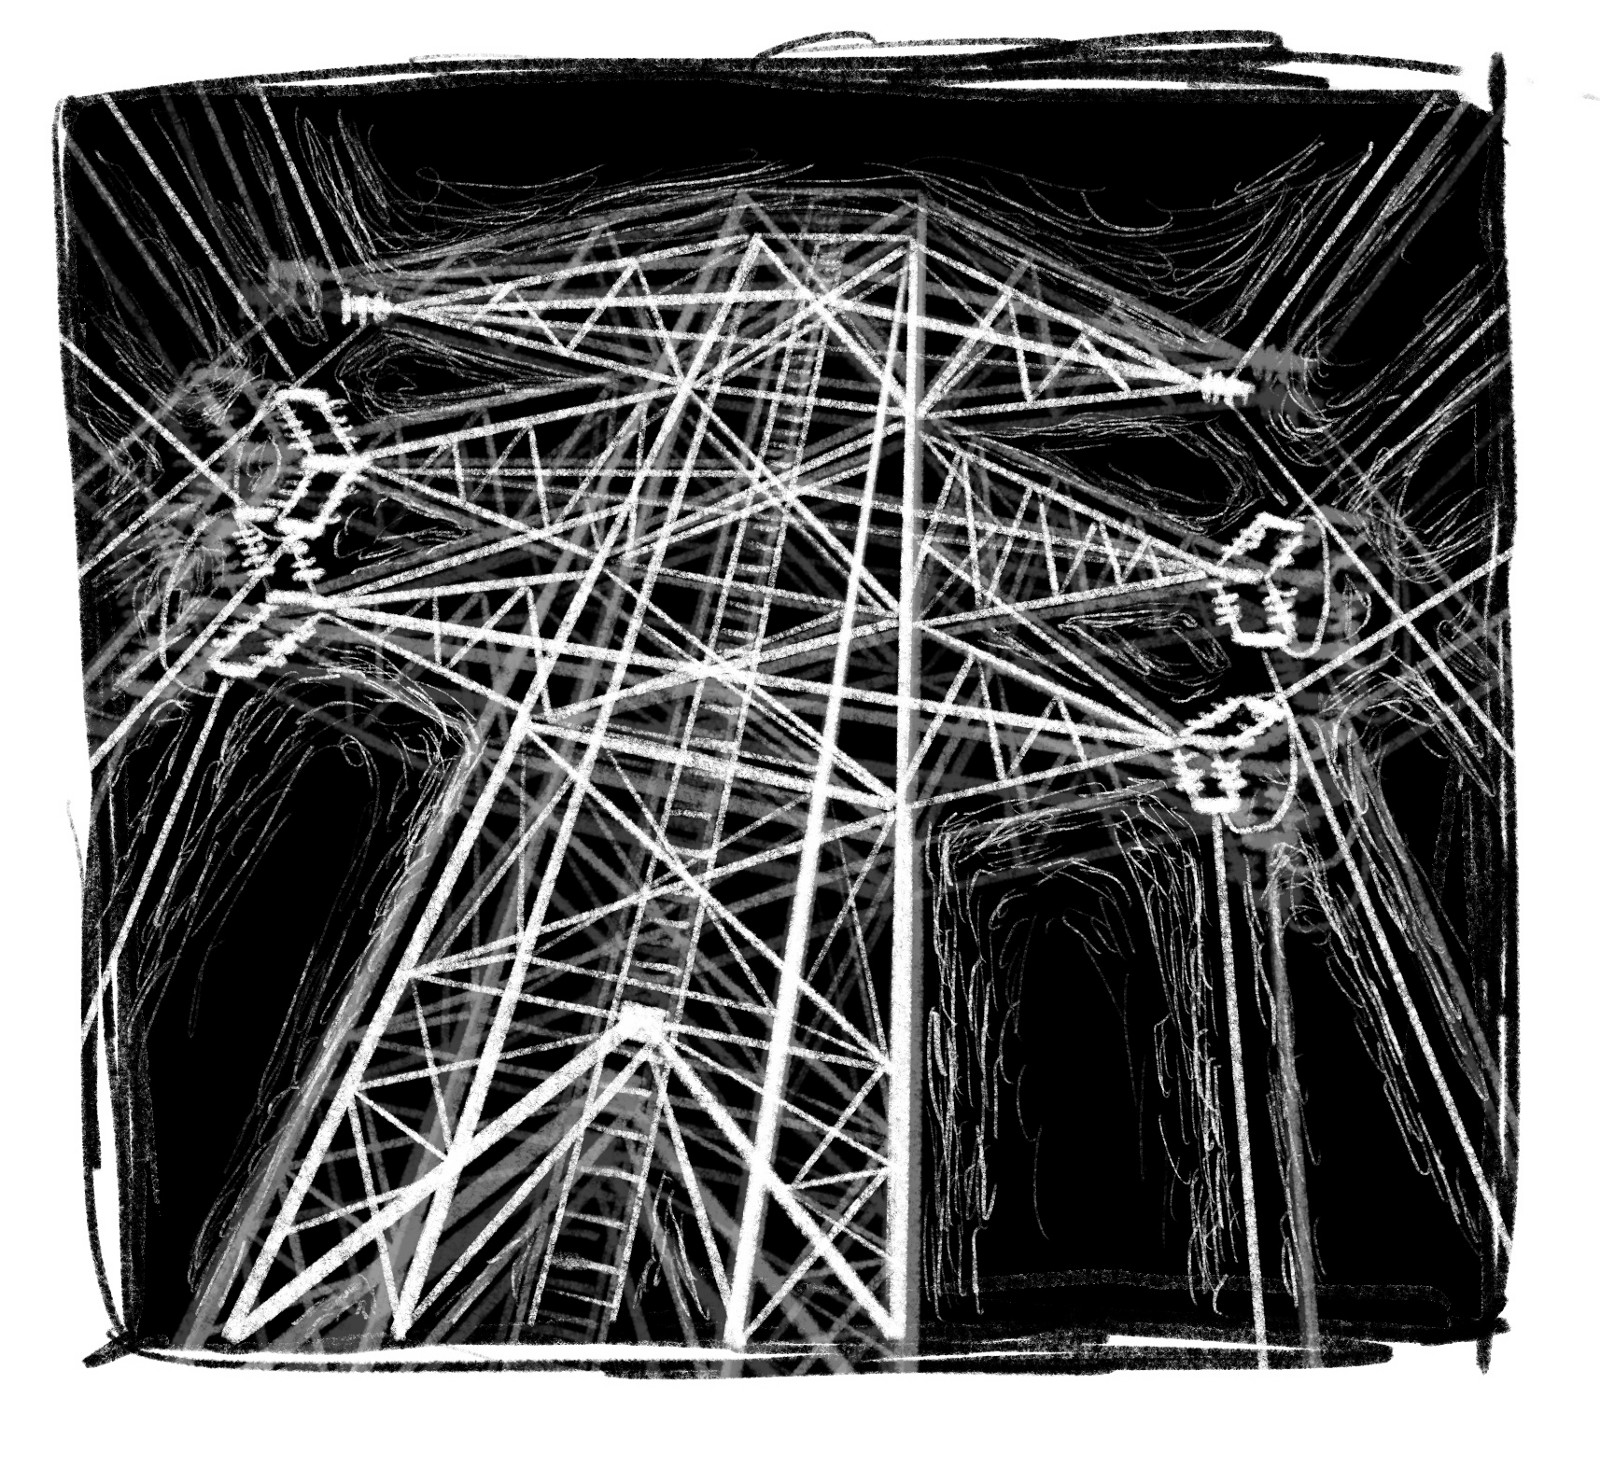 Image description: a drawing of a white transmission tower on a black background.